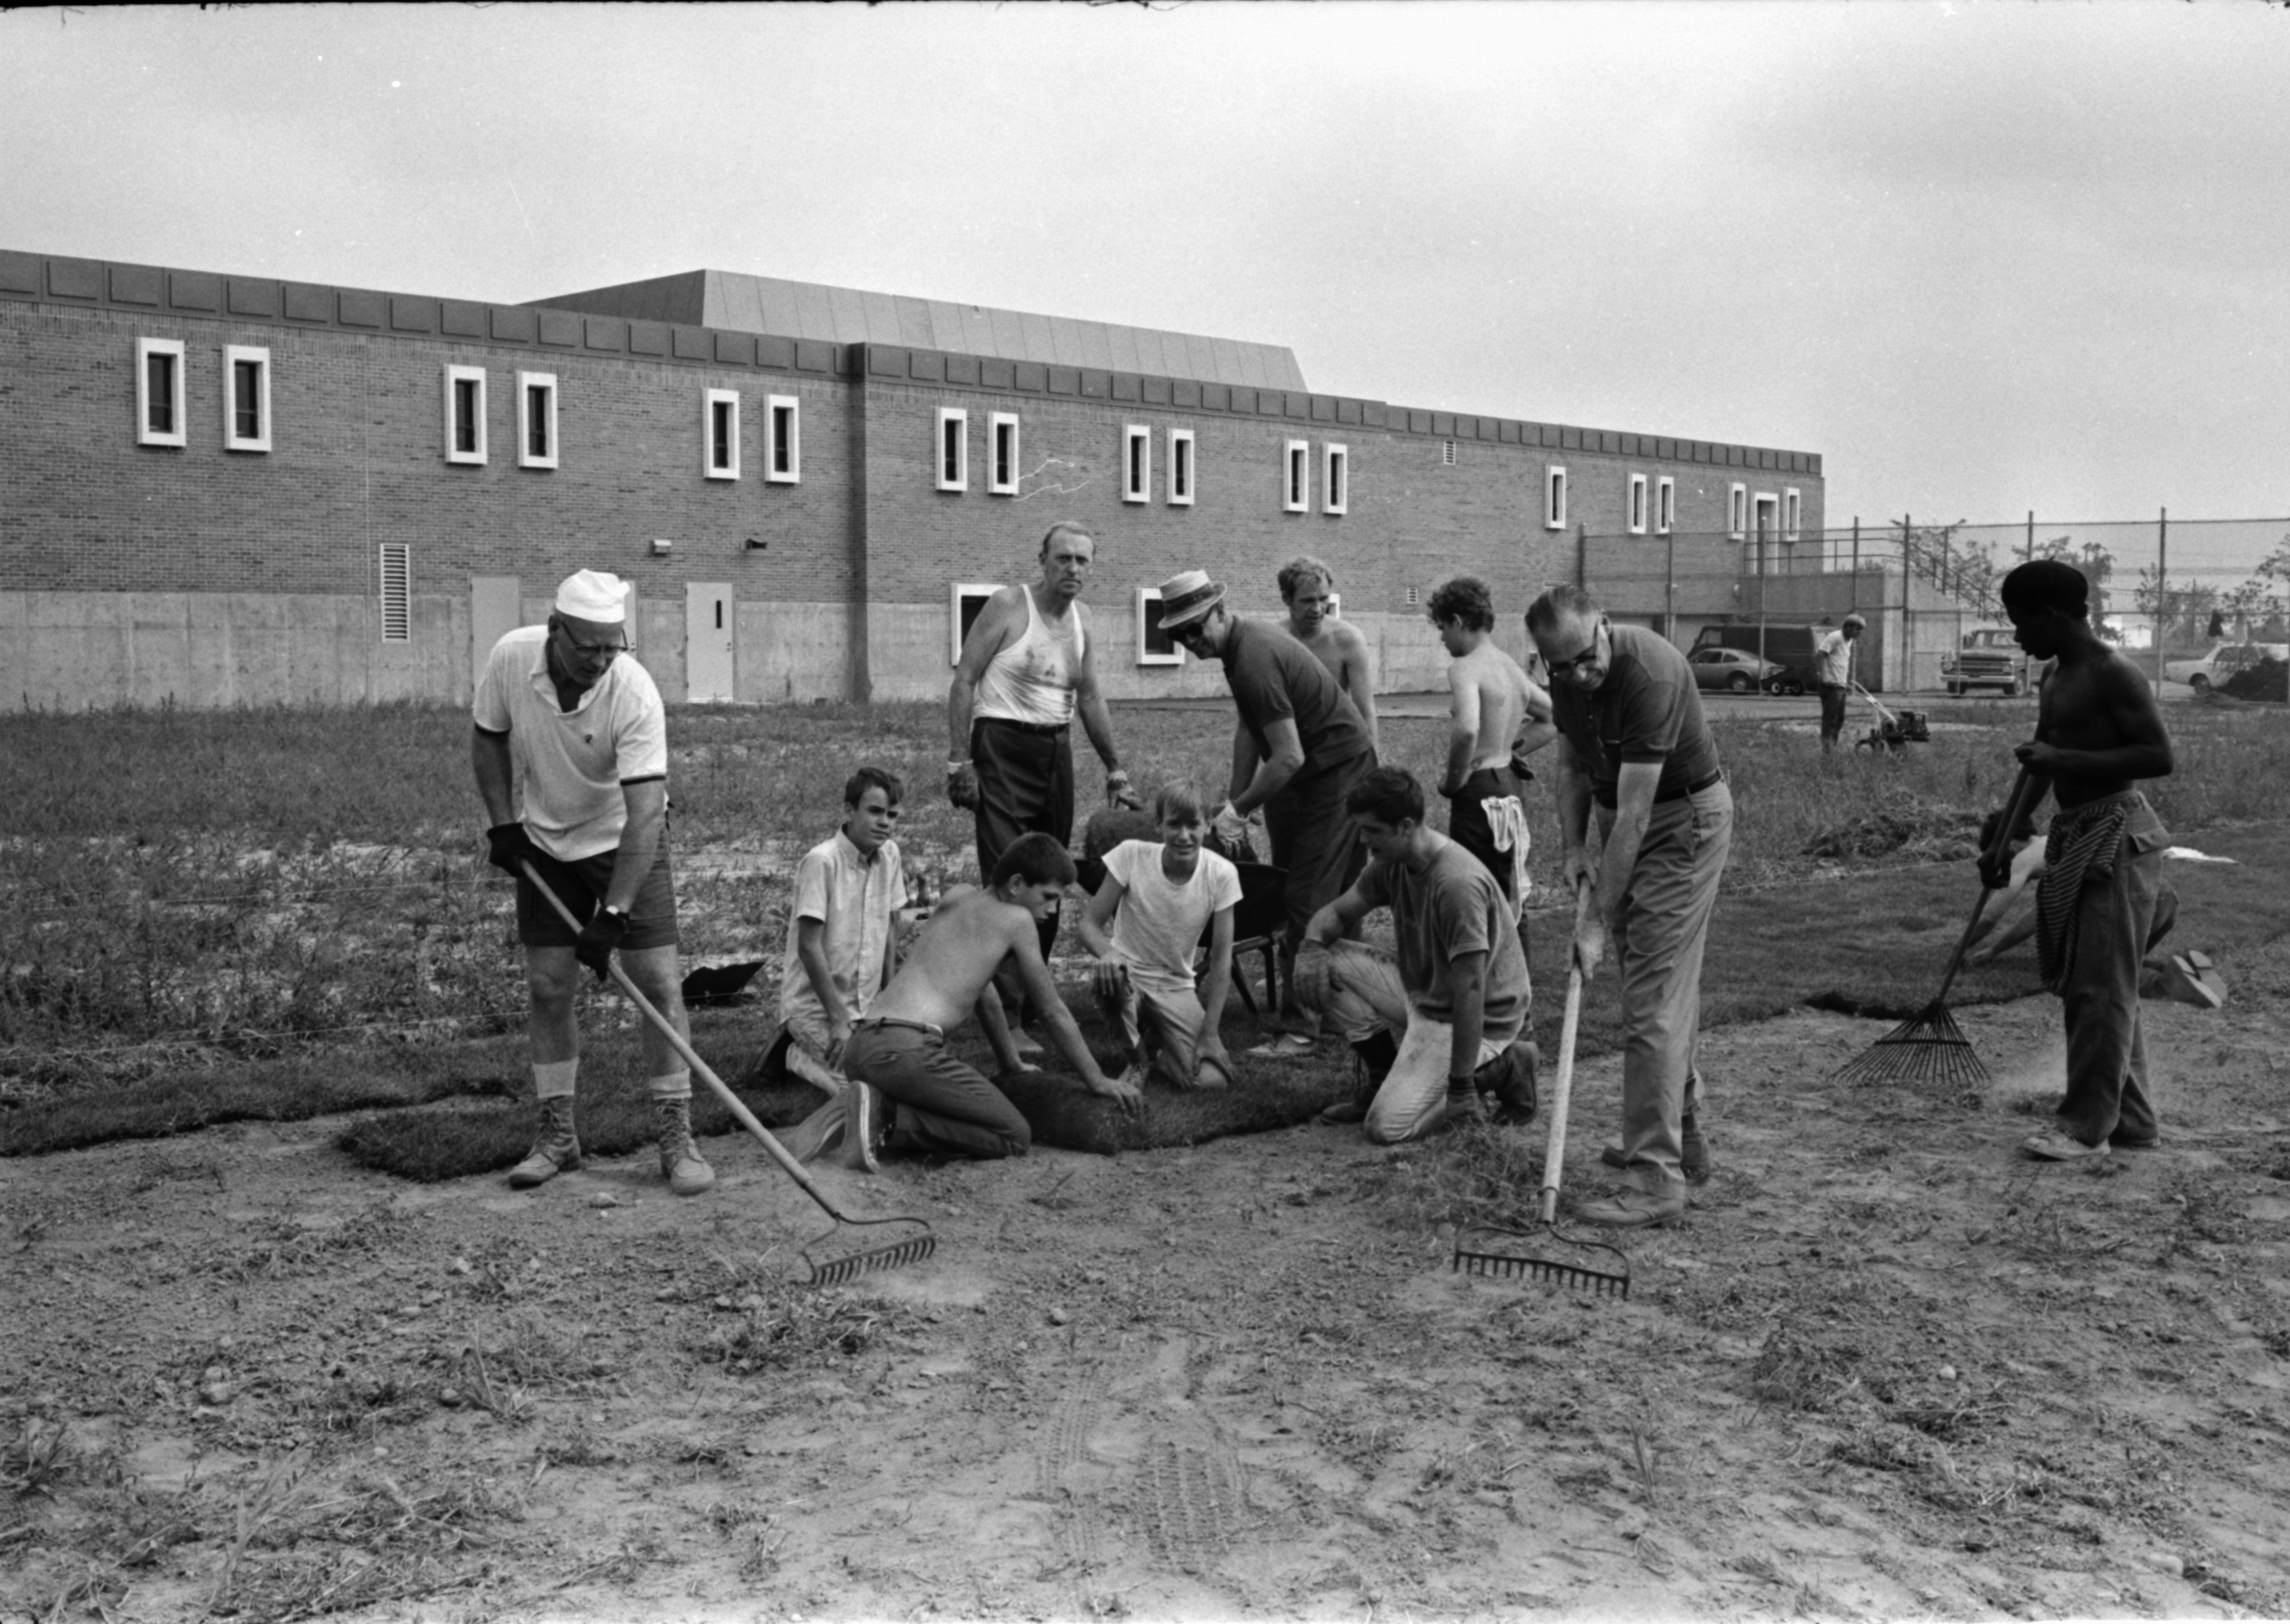 Volunteers Lay Sod on Juvenile Court Center Grounds, September 1969 image